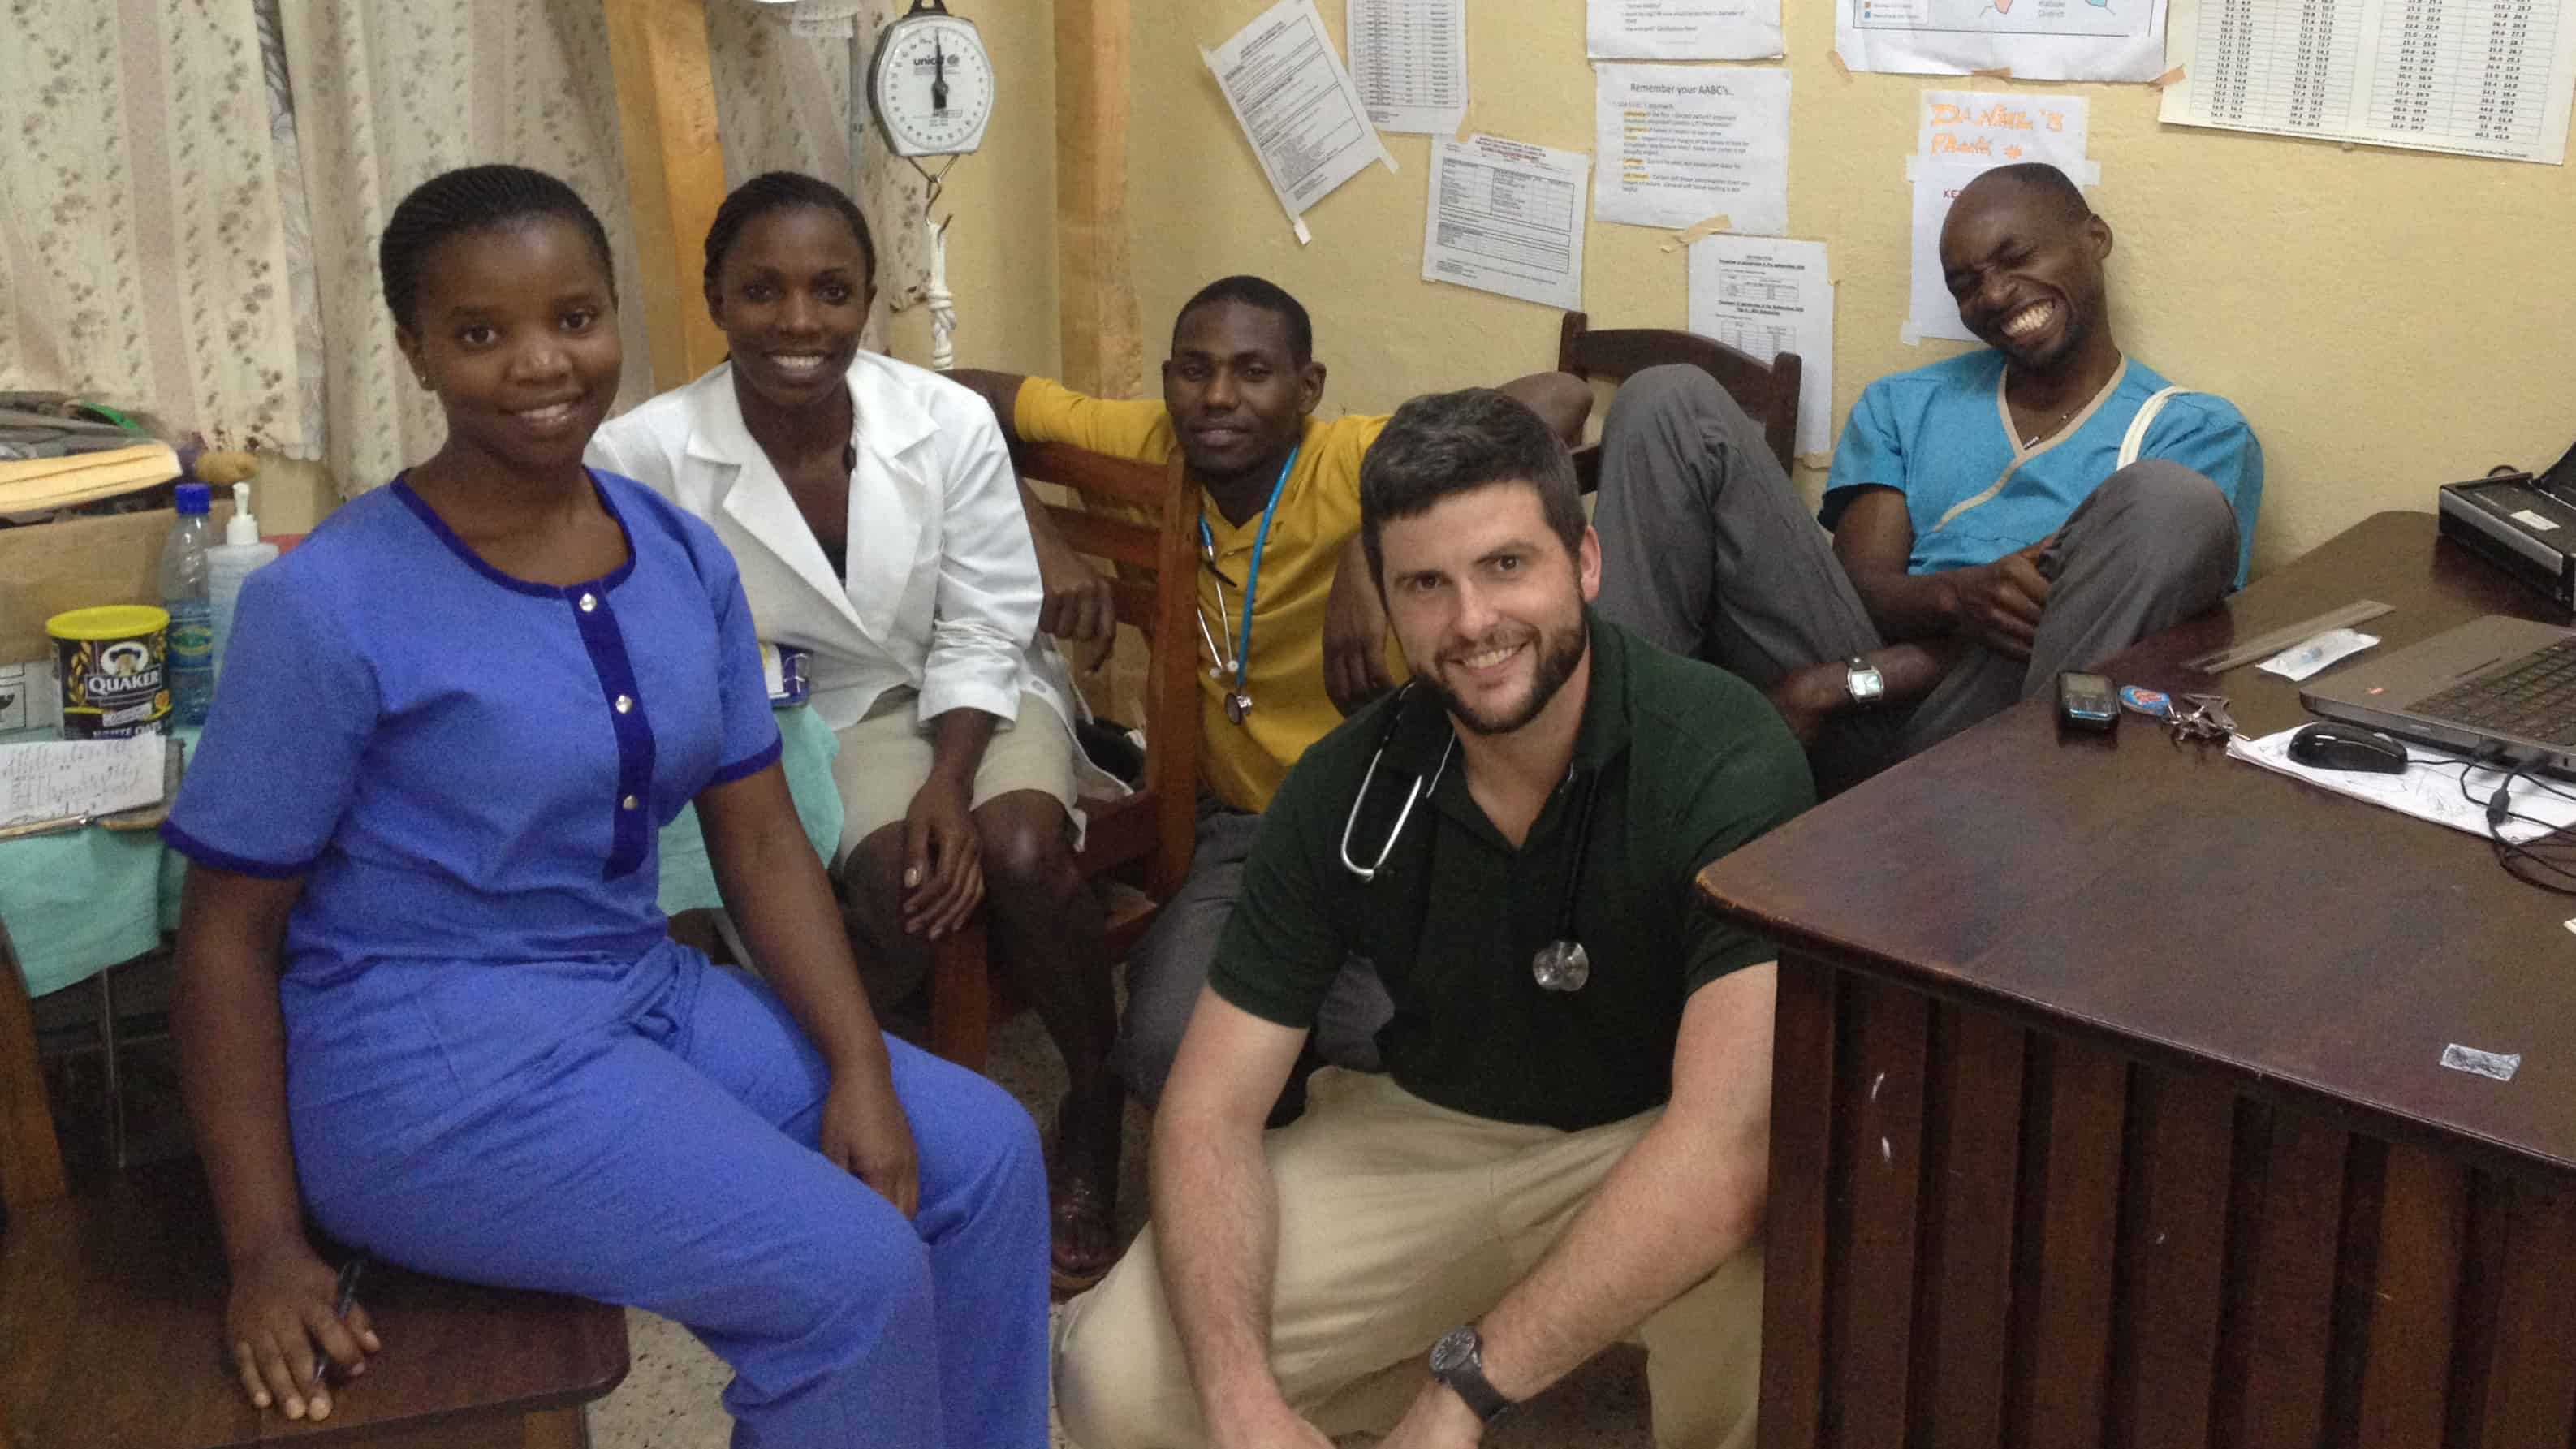 NC State alumnus Josh Sawyer at work in a medical clinic in Uganda sponsored by Global Emergency Care Collaborative